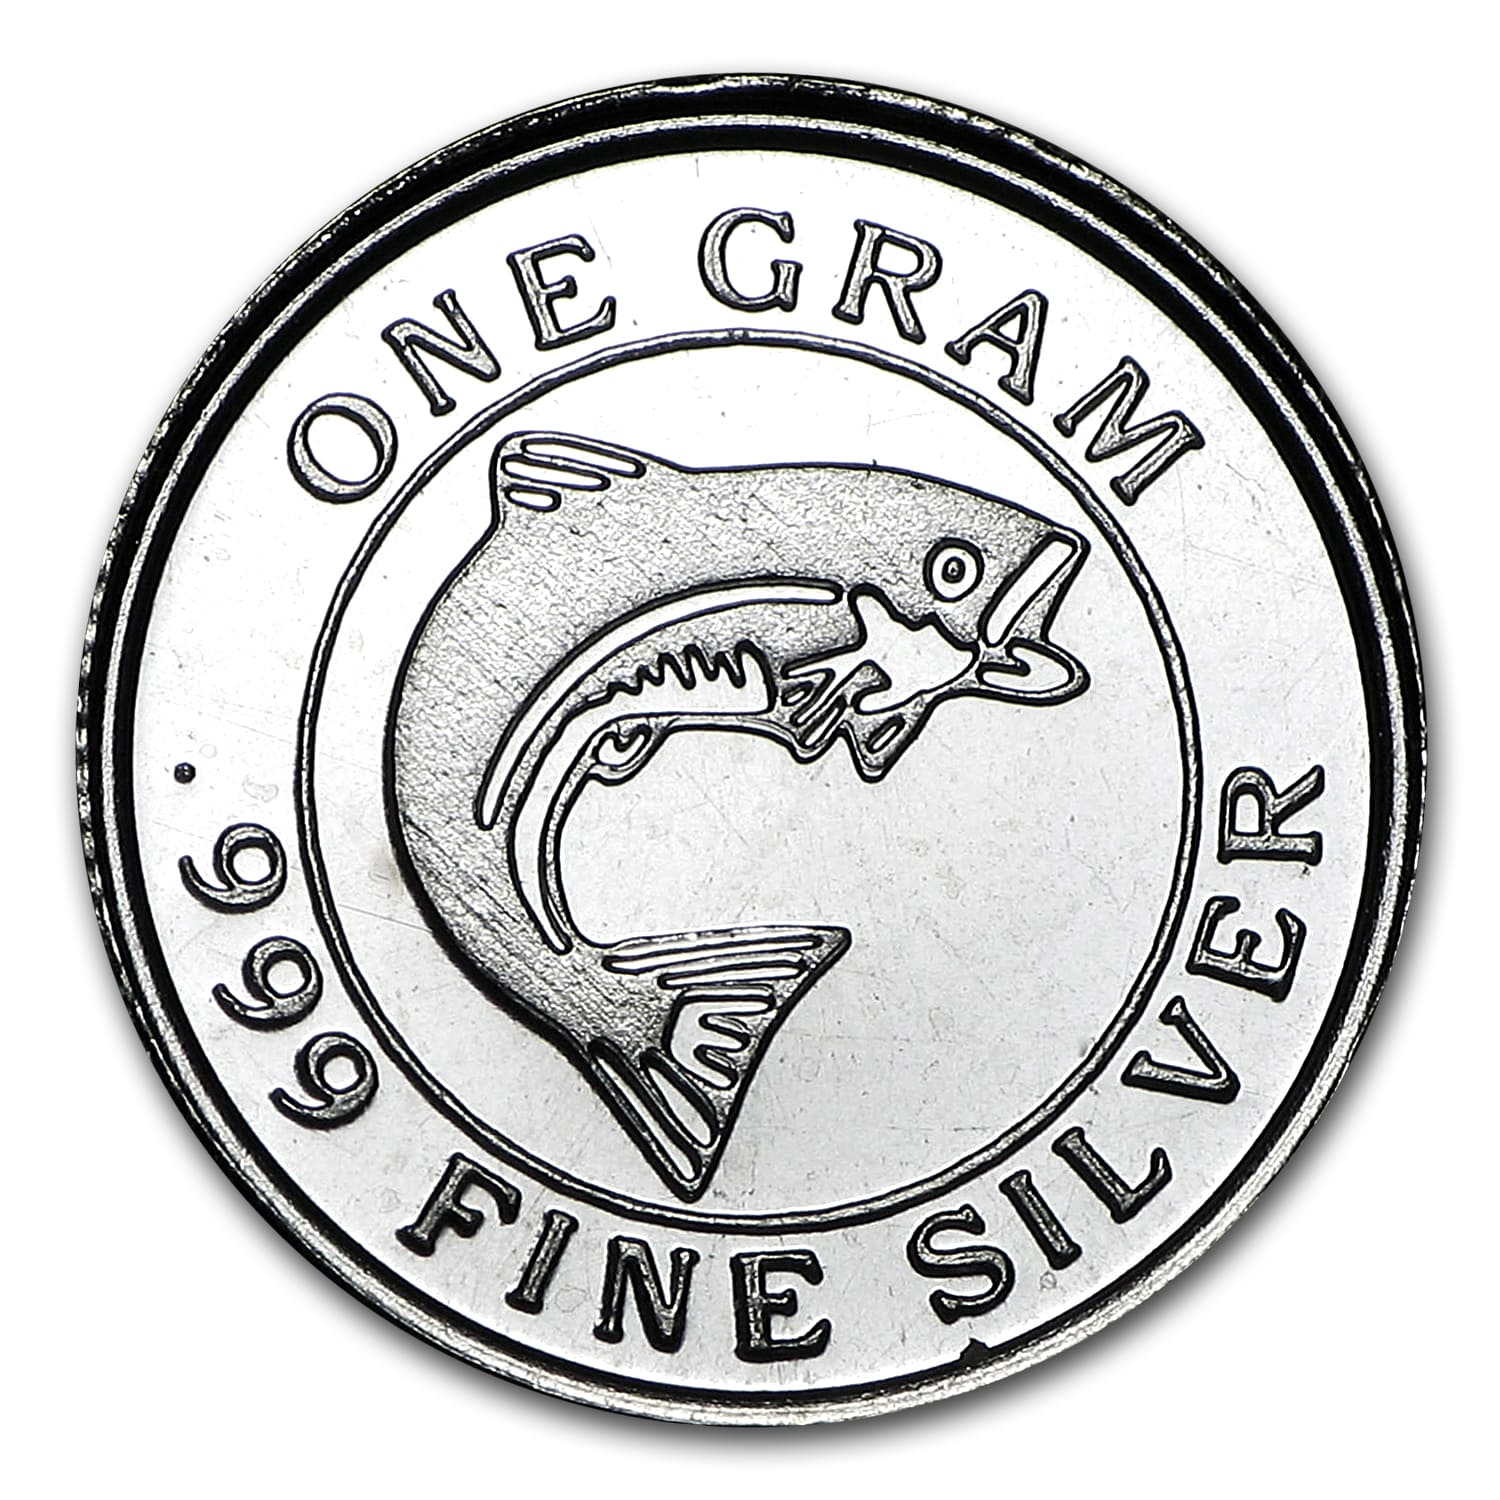 1 gram Silver Round - Monarch Precious Metals (Salmon Fish)